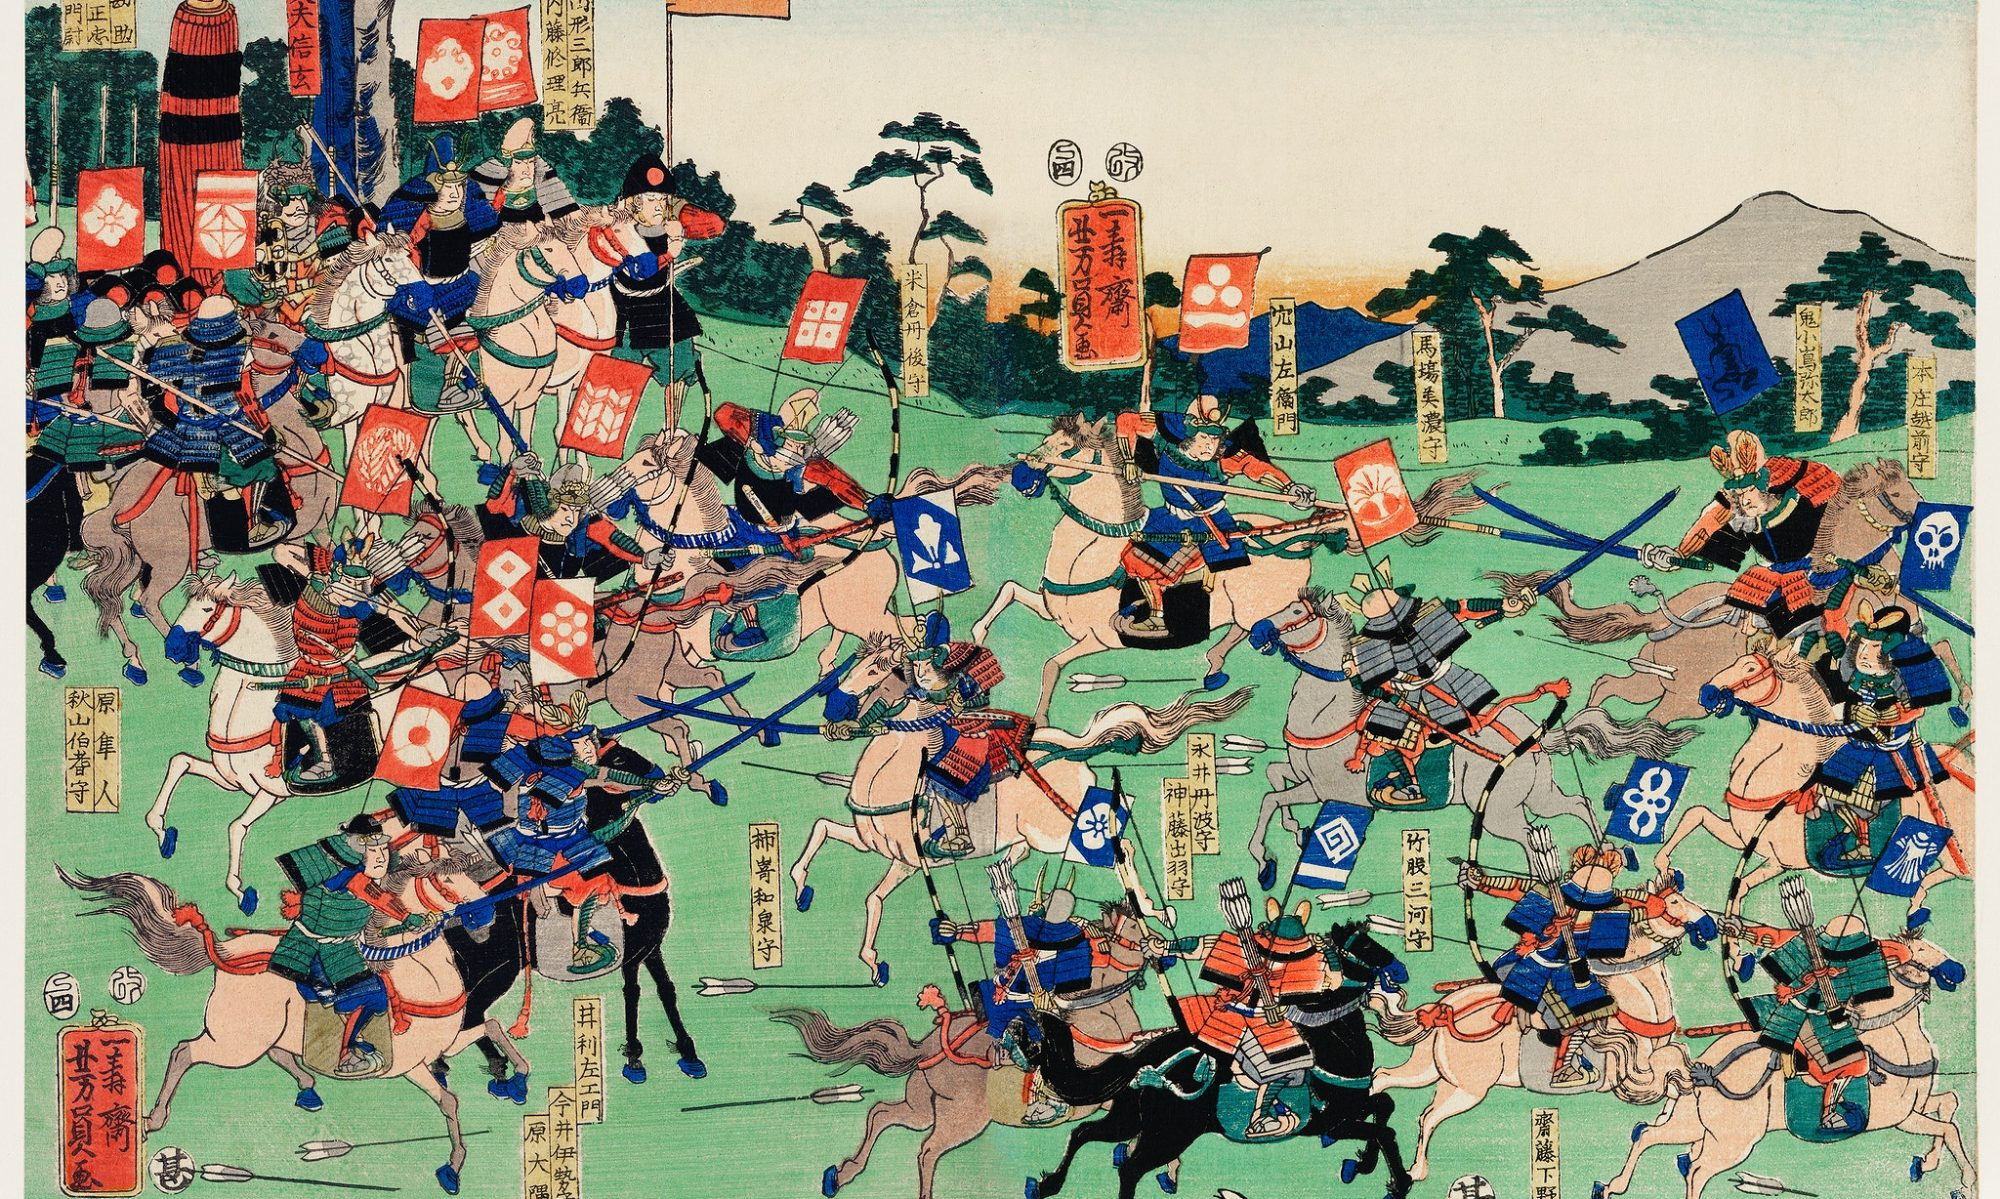 Digital Humanities and Japanese History